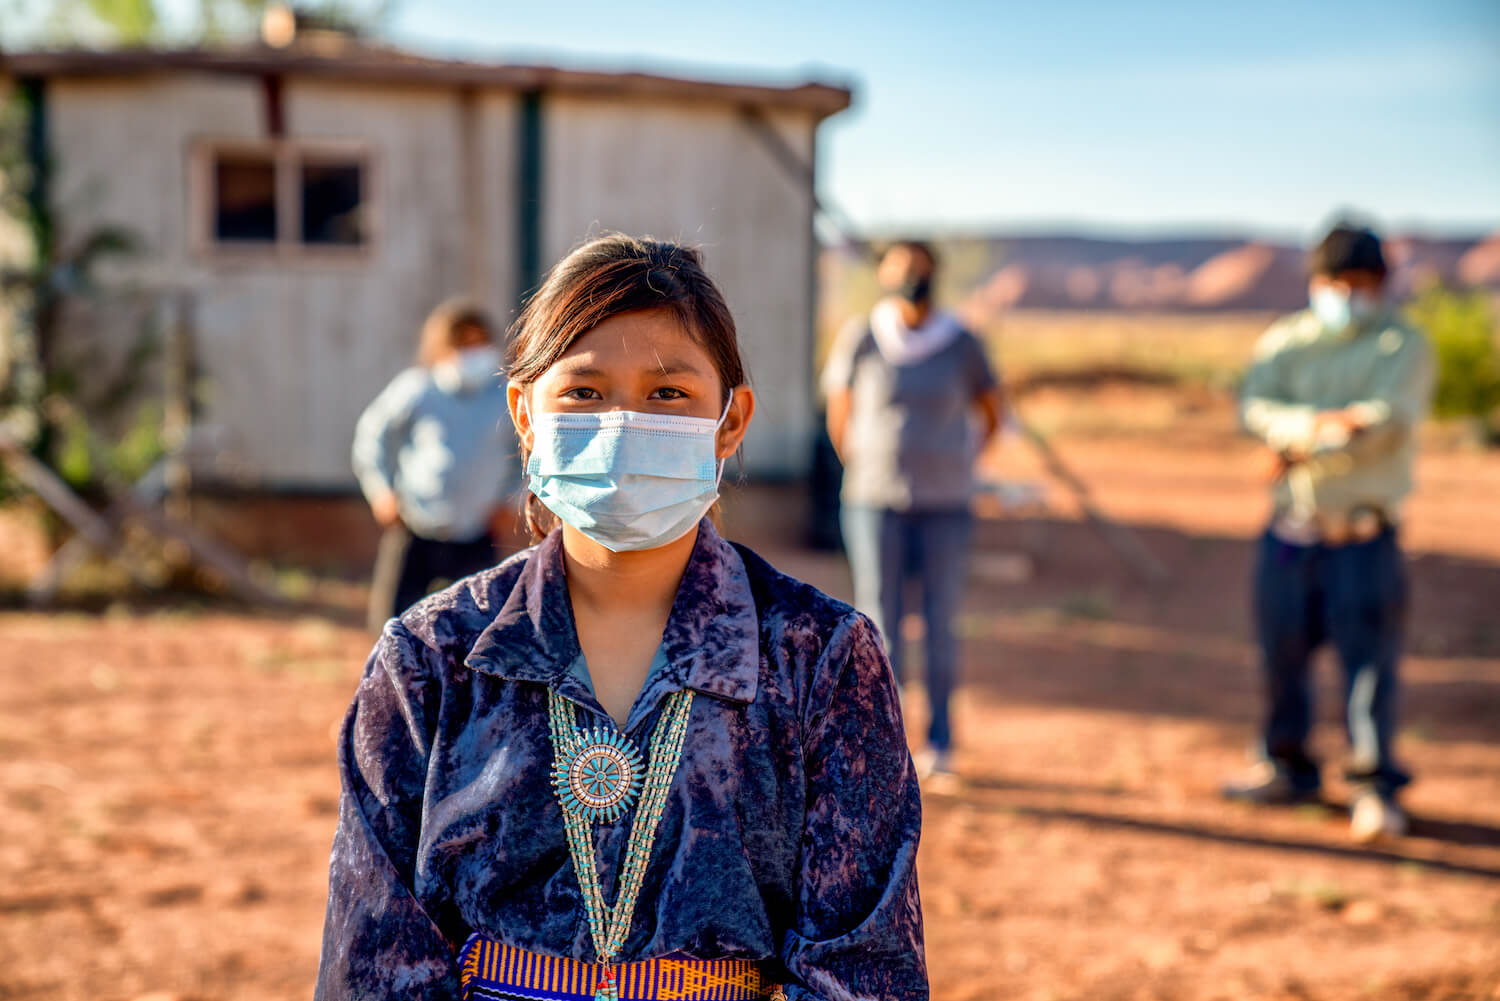 Navajo family social distancing with covid masks outside their home in monument valley arizona